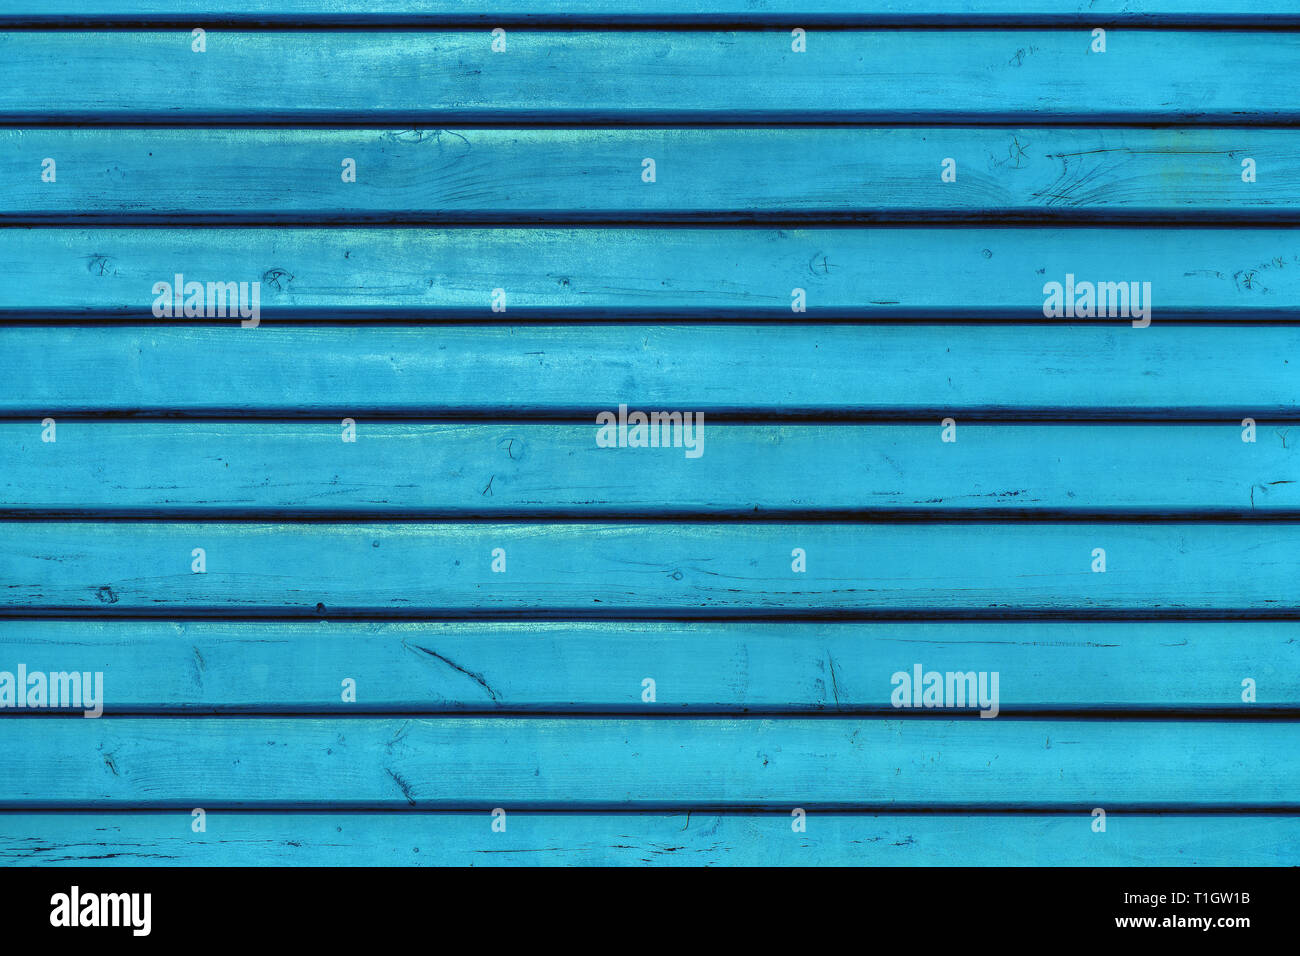 Blue vintage wooden boards in overlap cladding pattern, front view as copy space or graphic design background - Stock Image